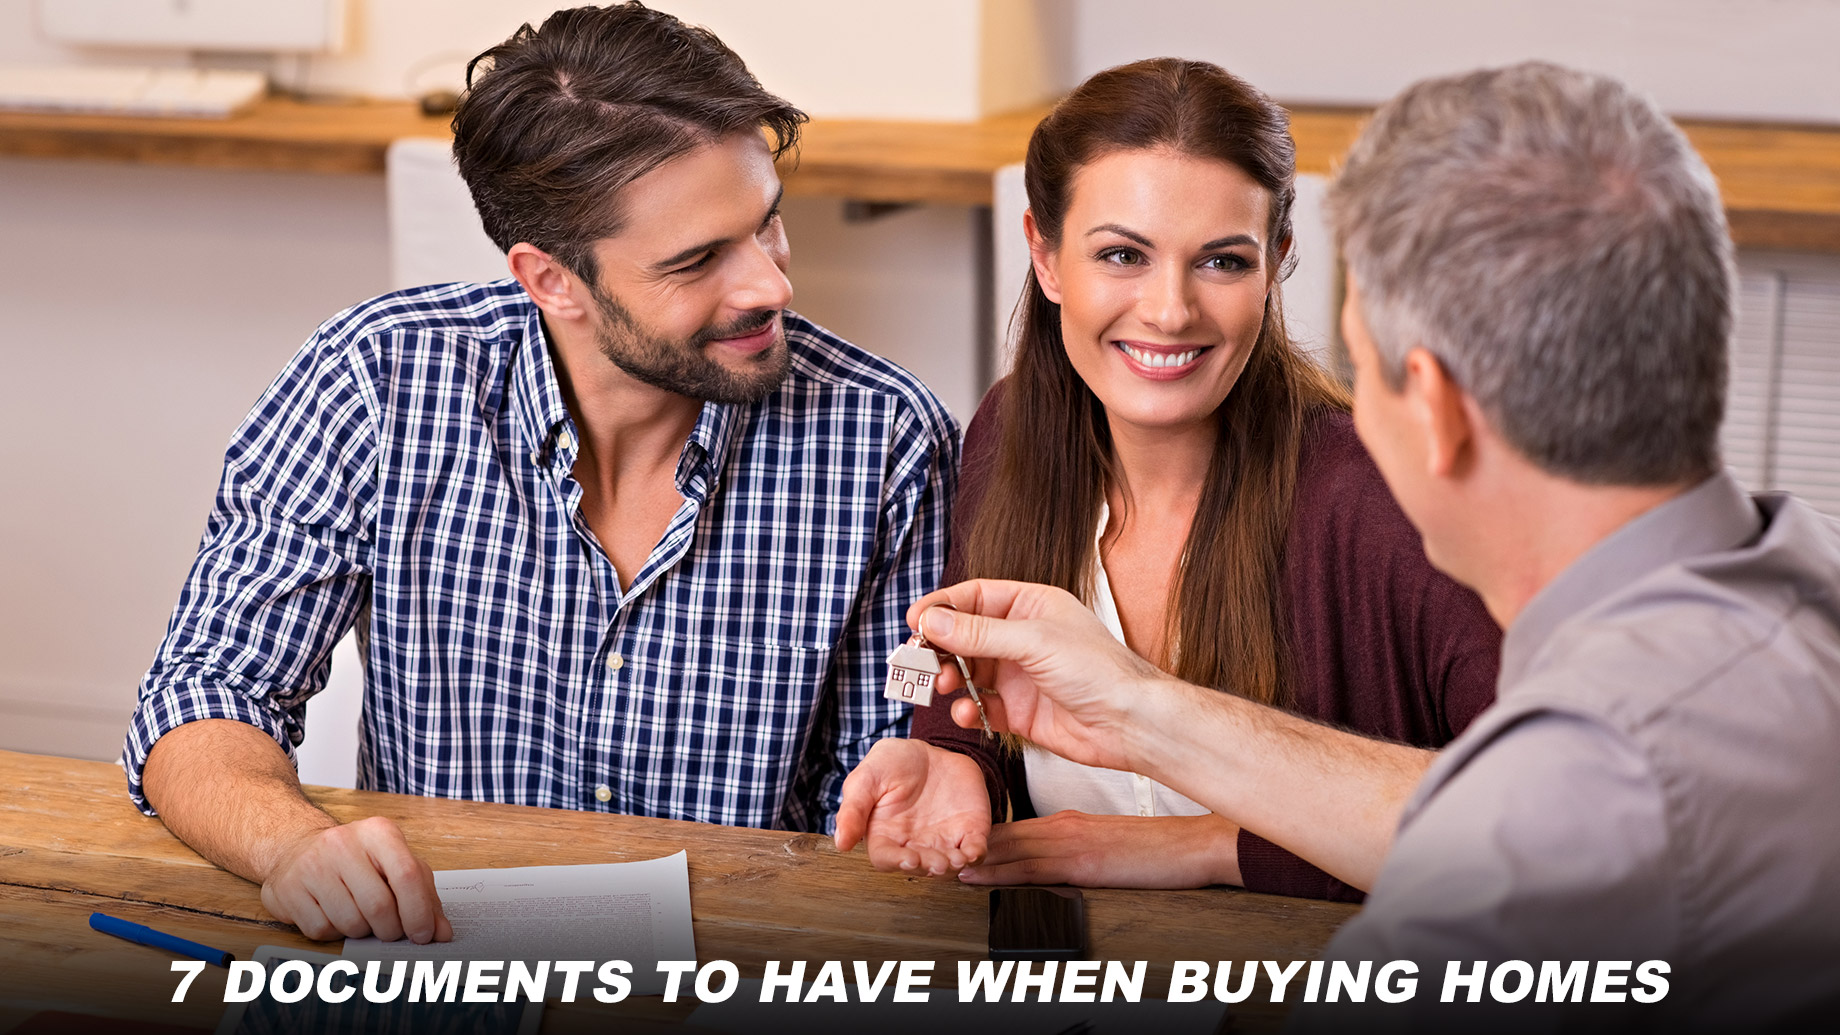 7 Documents to Have When Buying Homes